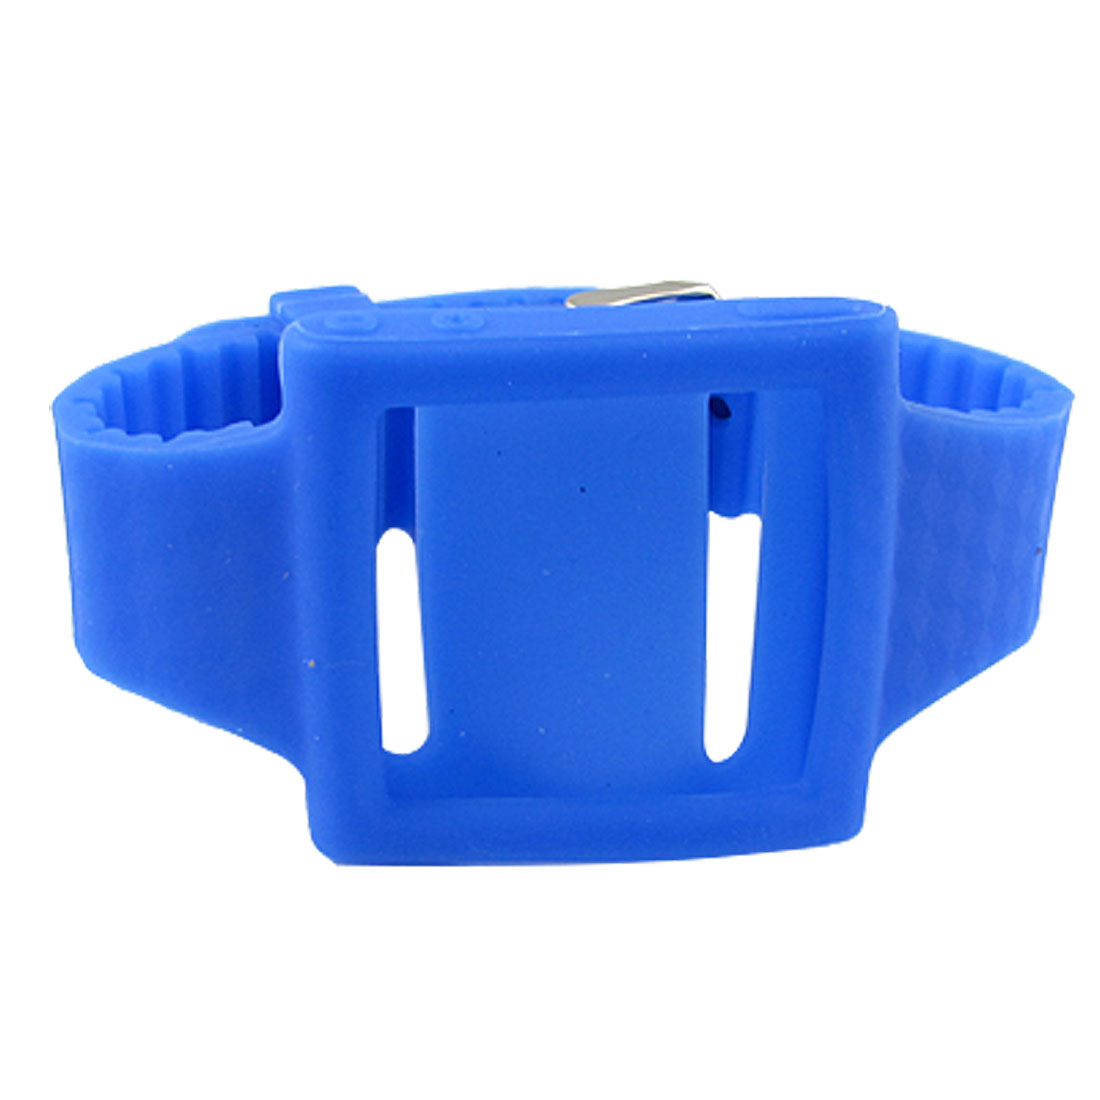 Royalblue Soft Silicone Wrist Band Case for iPod Nano 6